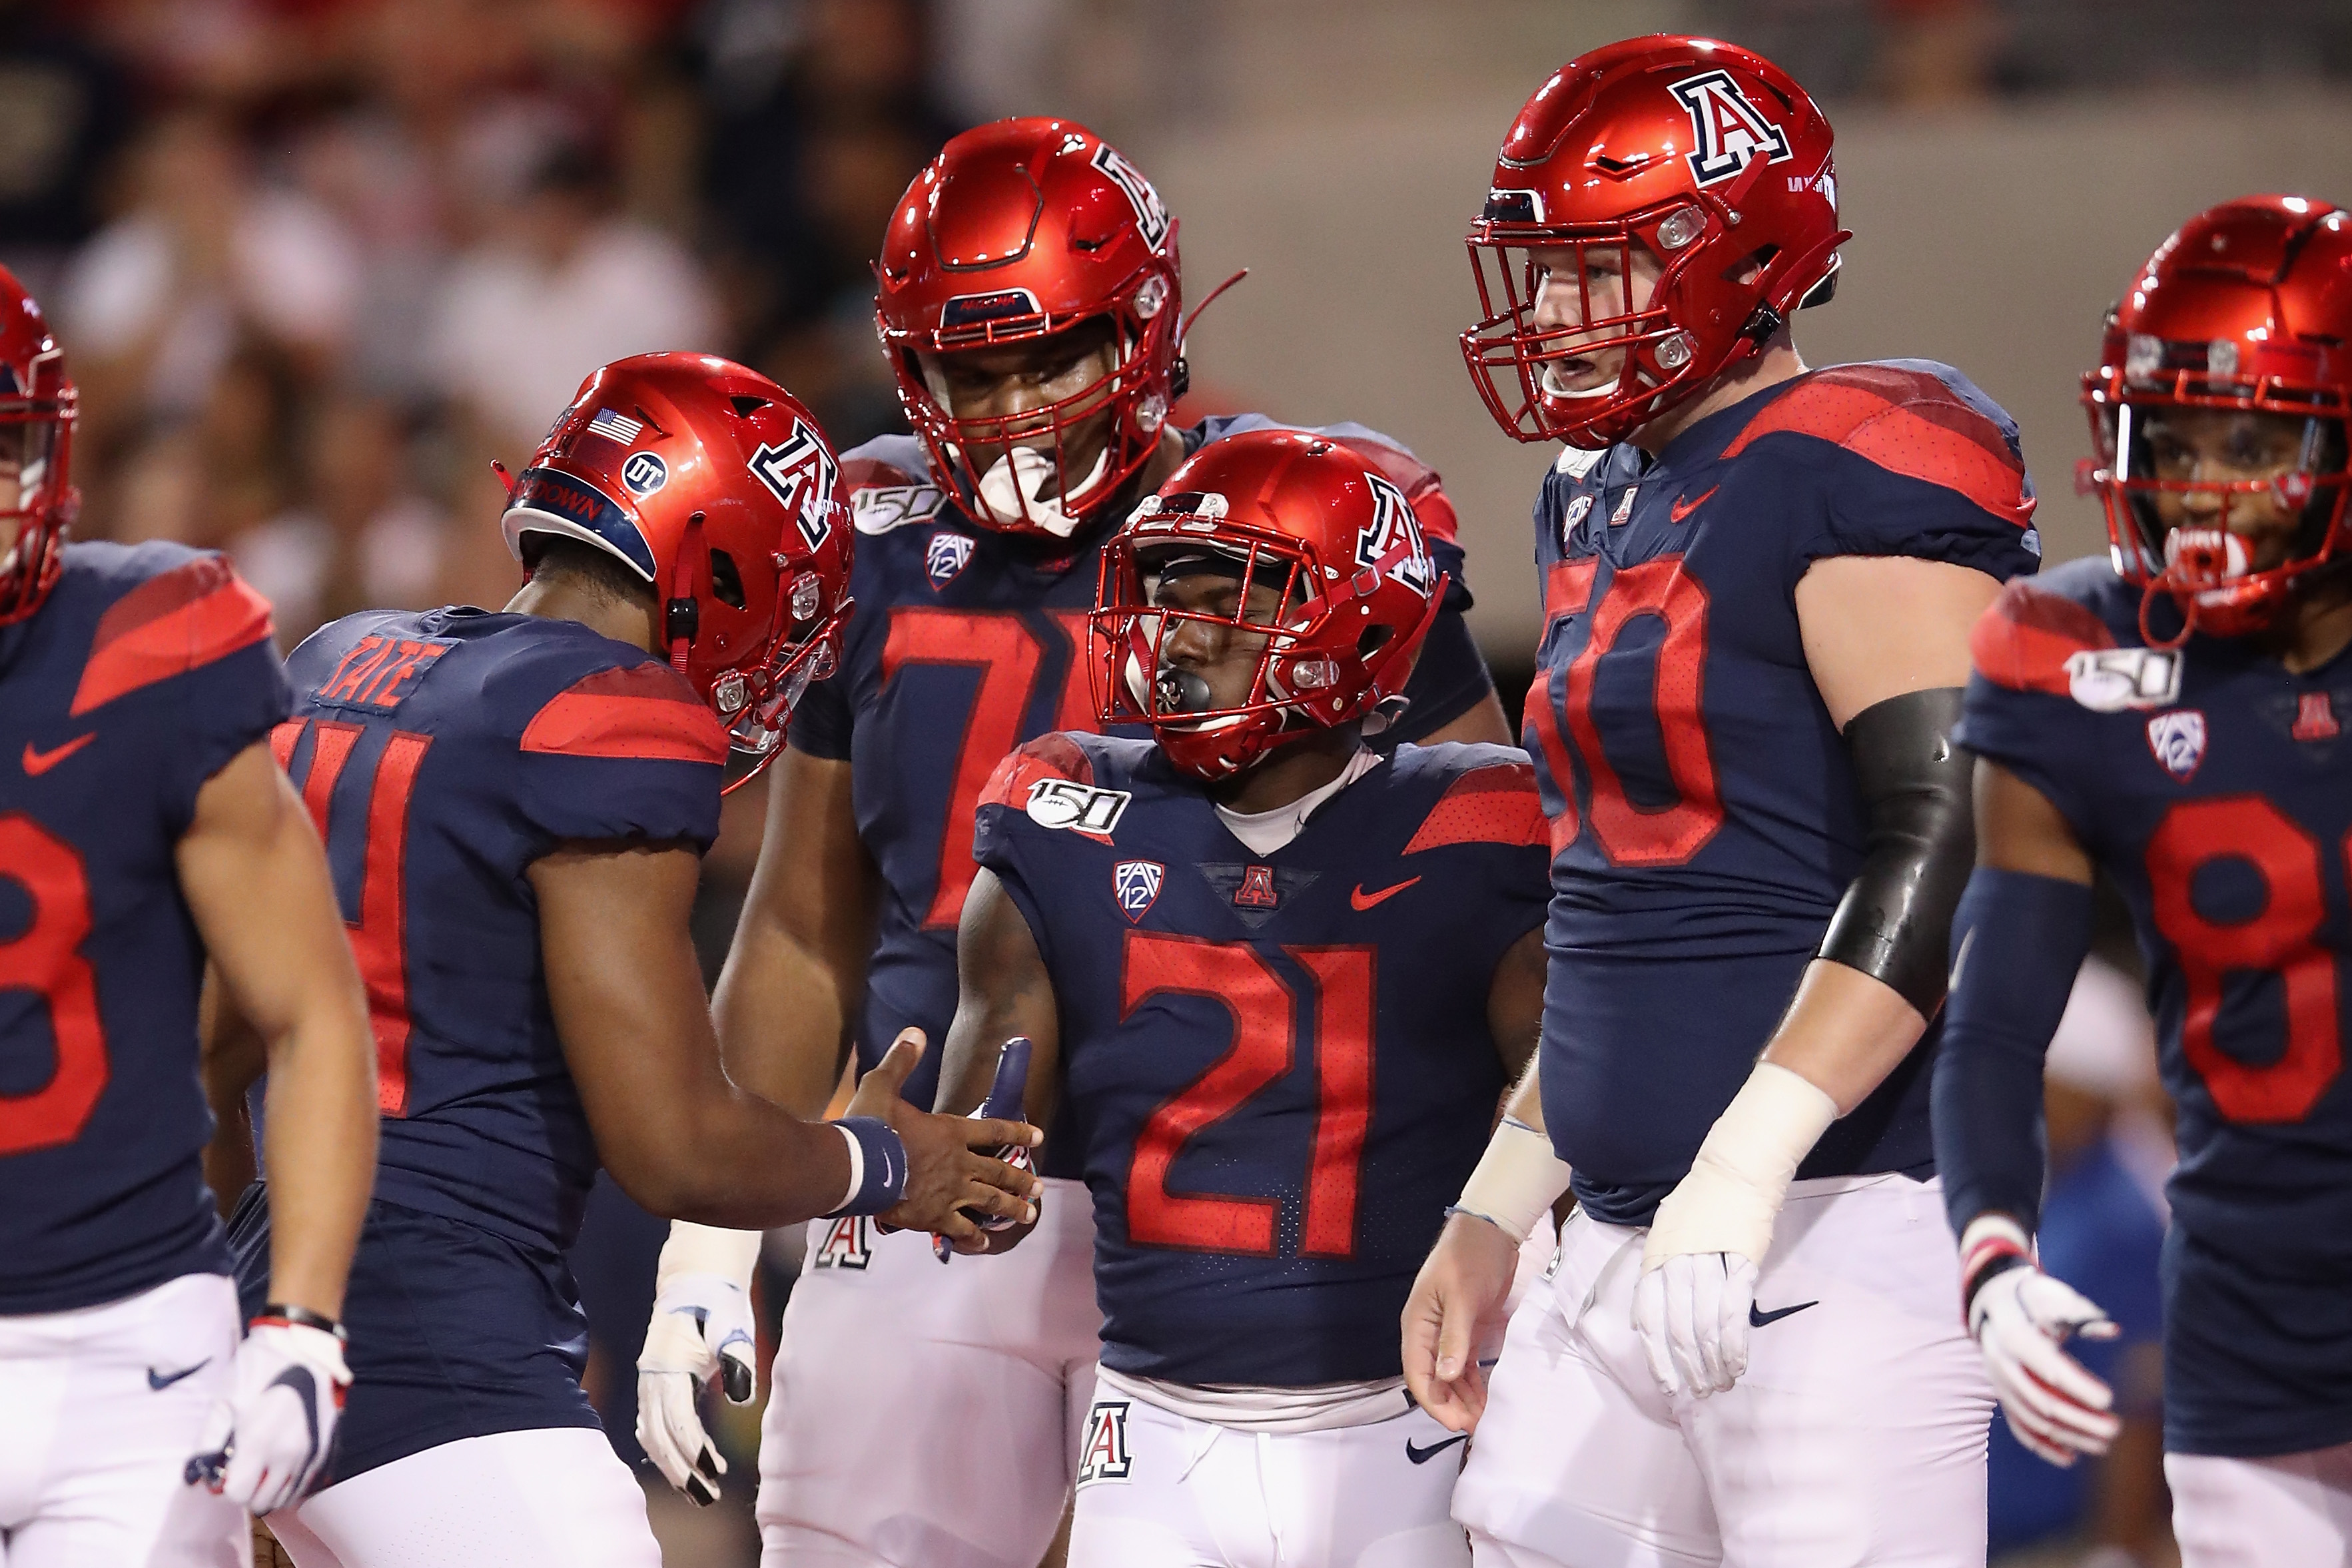 arizona-texas-tech-football-preview-bowl-game-predicitions-wildcats-red-raiders